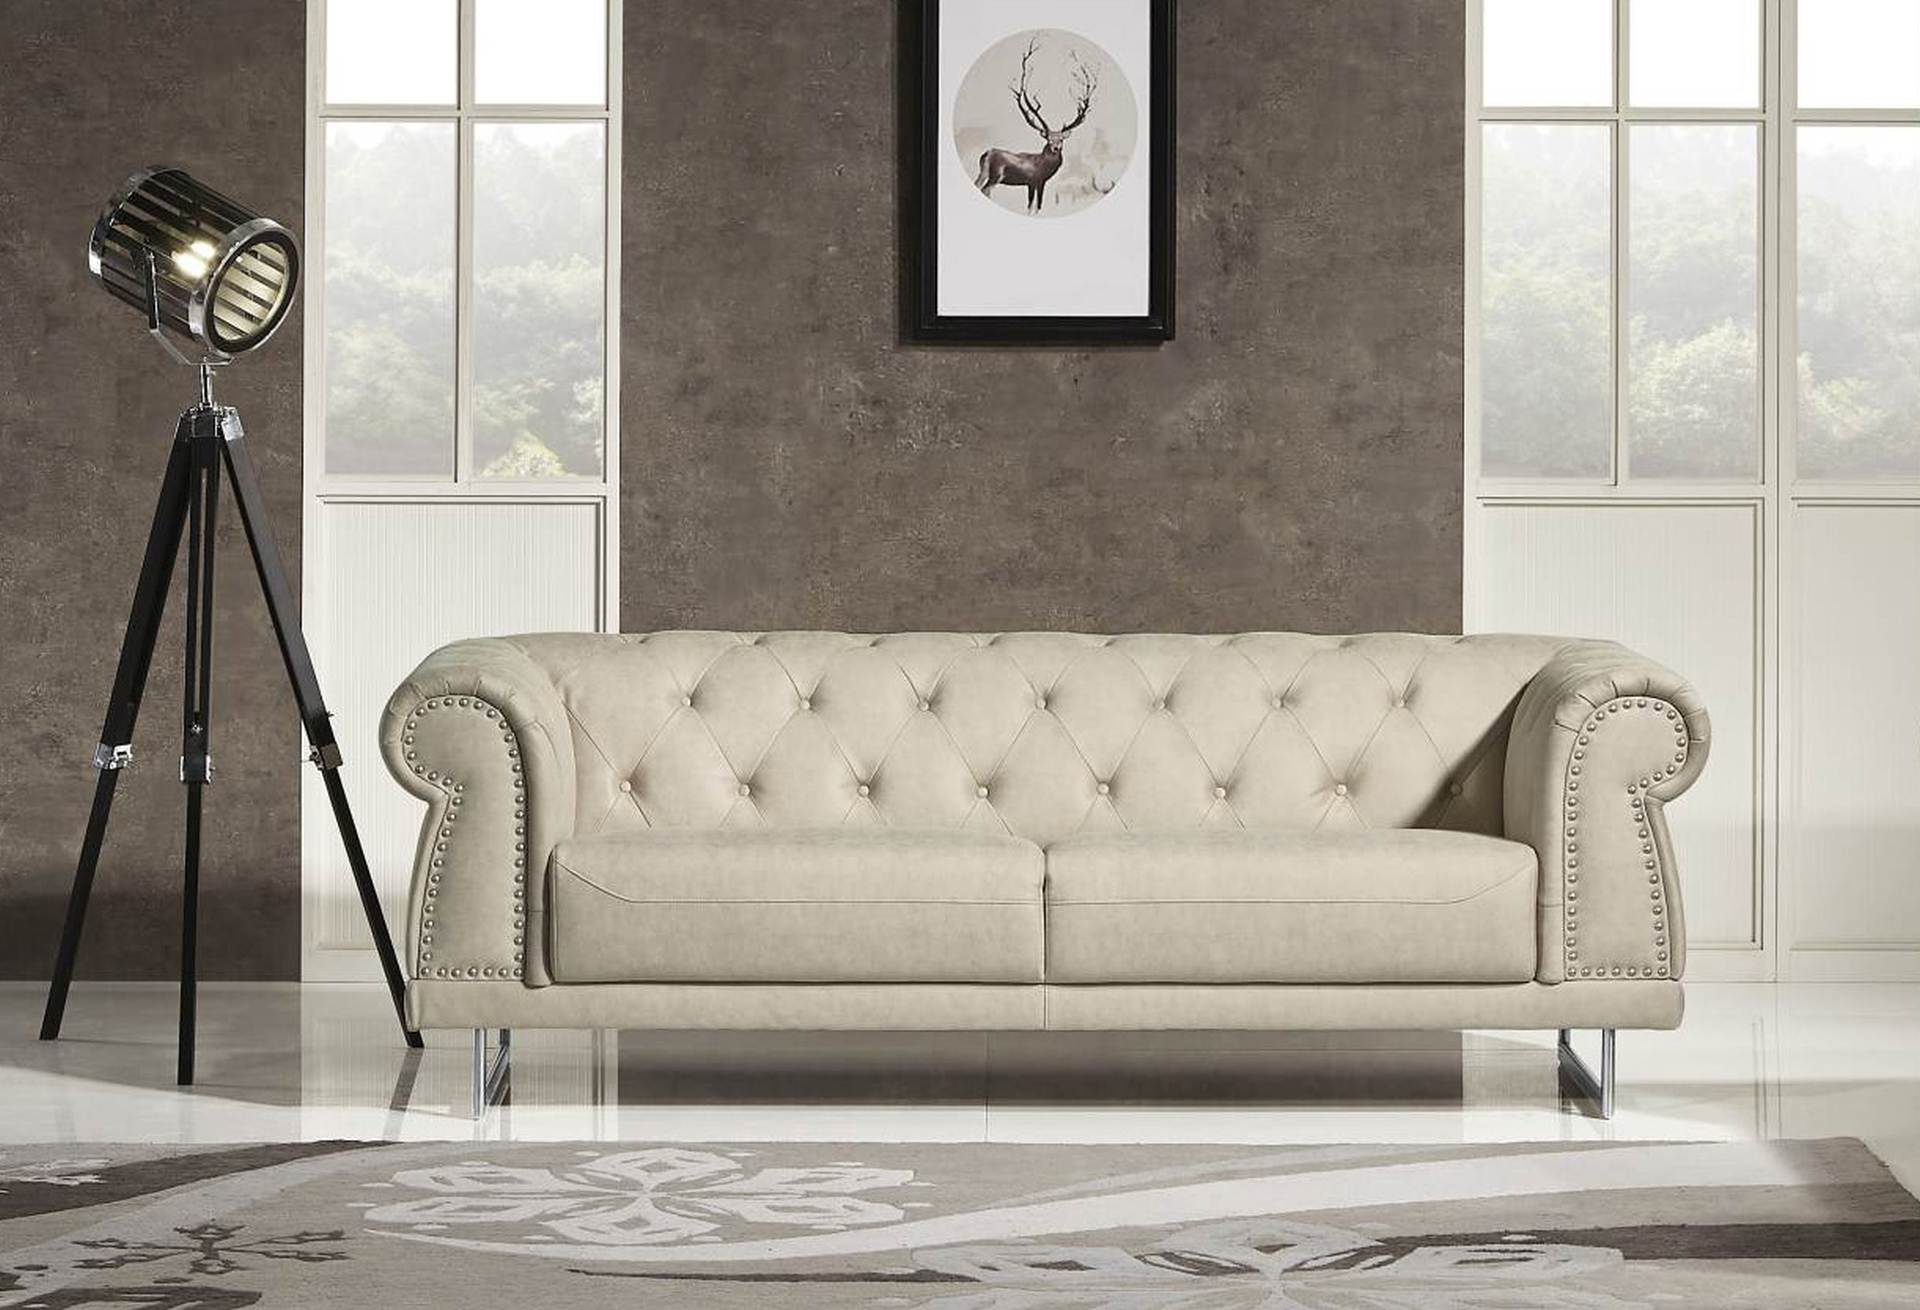 Designer Couch Mason Designer Sofa Leather Air Code G01 Beige Husky Furniture And Mattresses